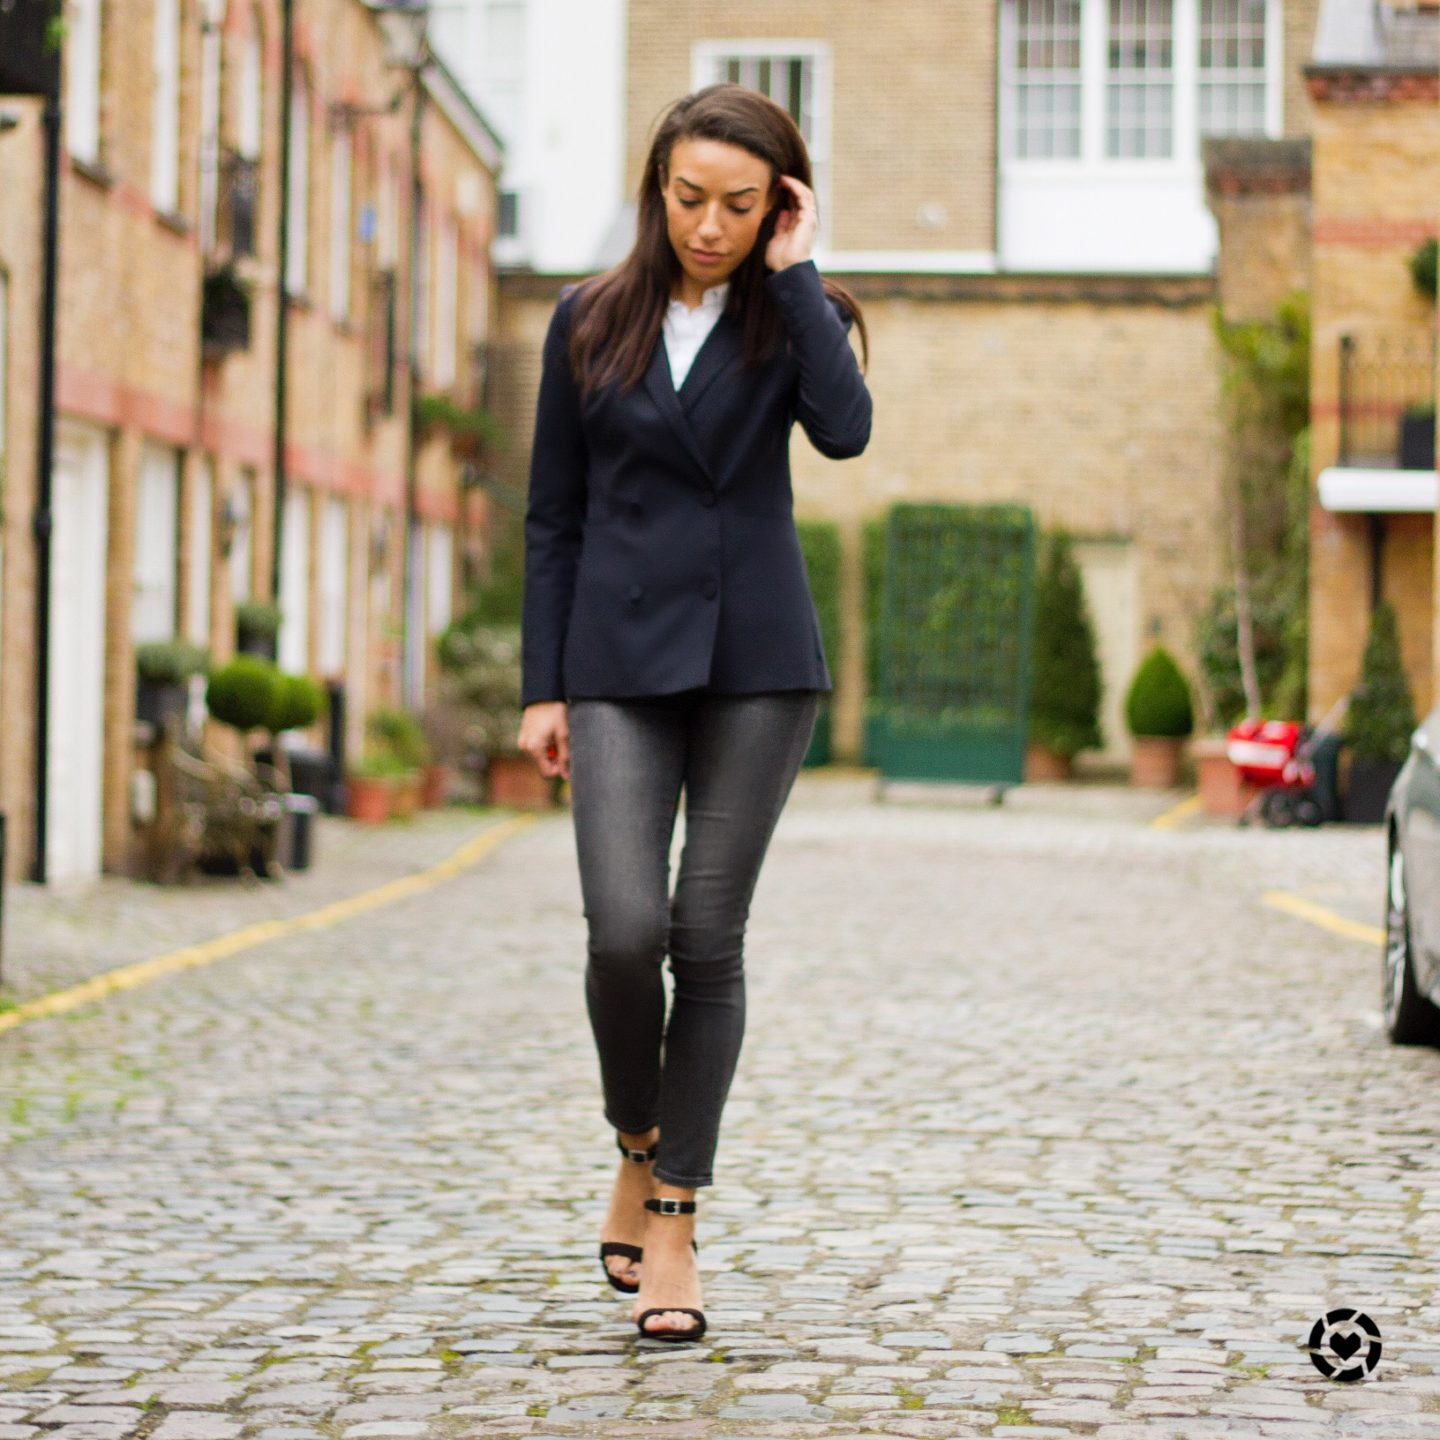 5 Work Outfits to Copy From Instagram This Week